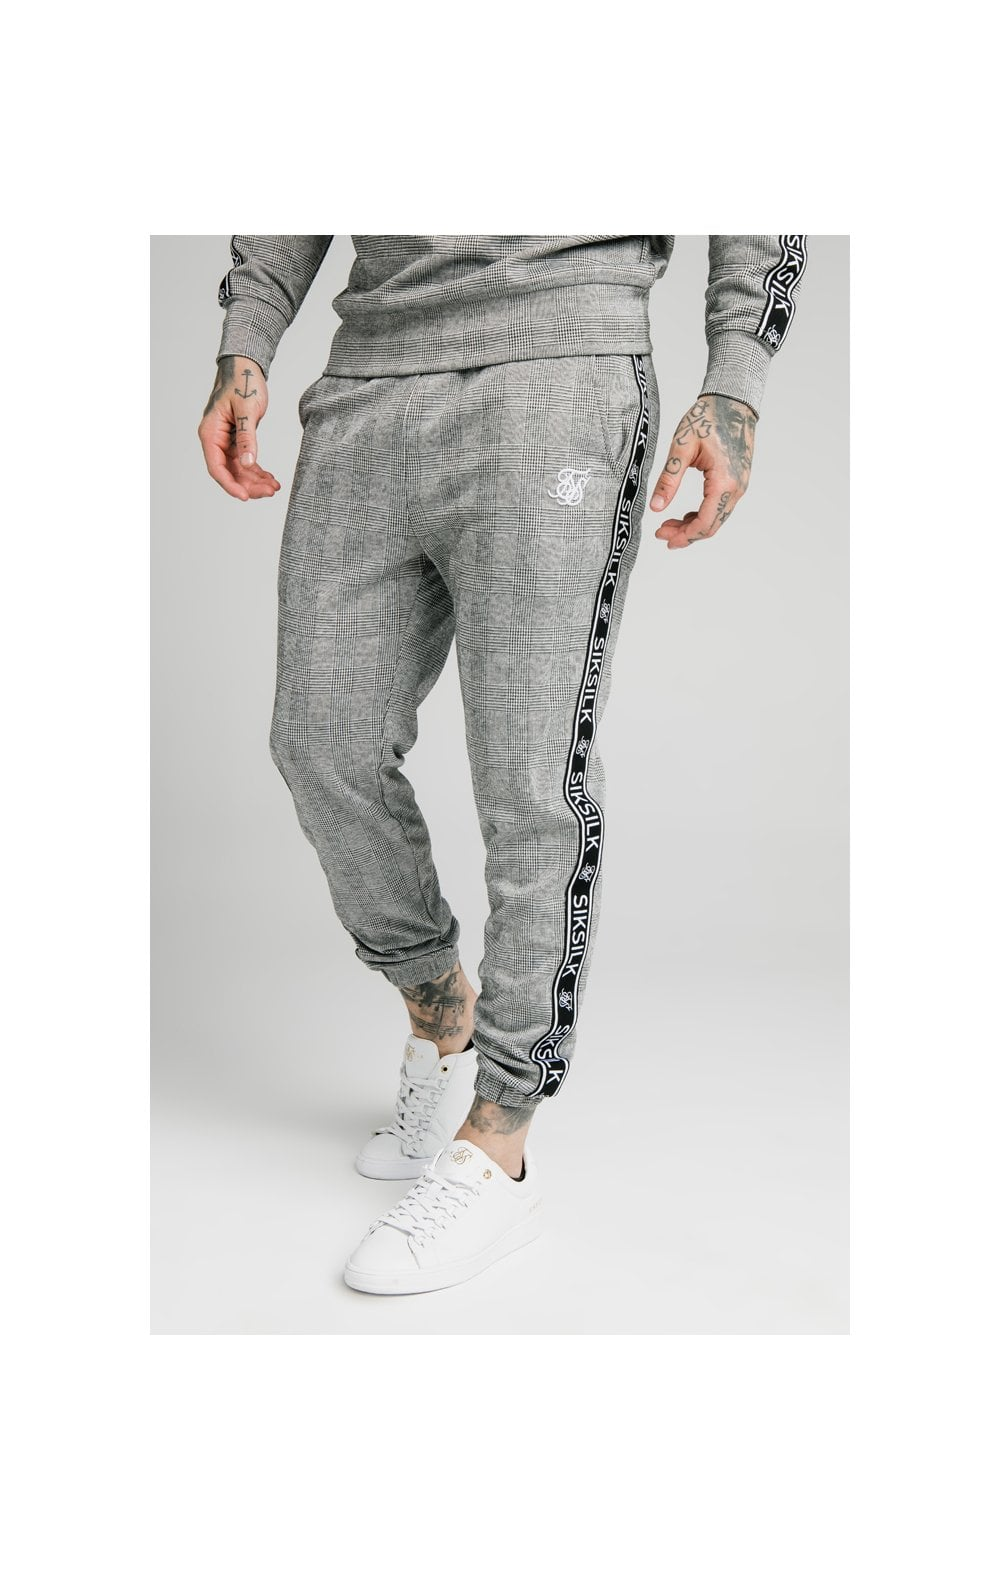 SikSilk Dog Tooth Check Chuffed Pant - Black & White